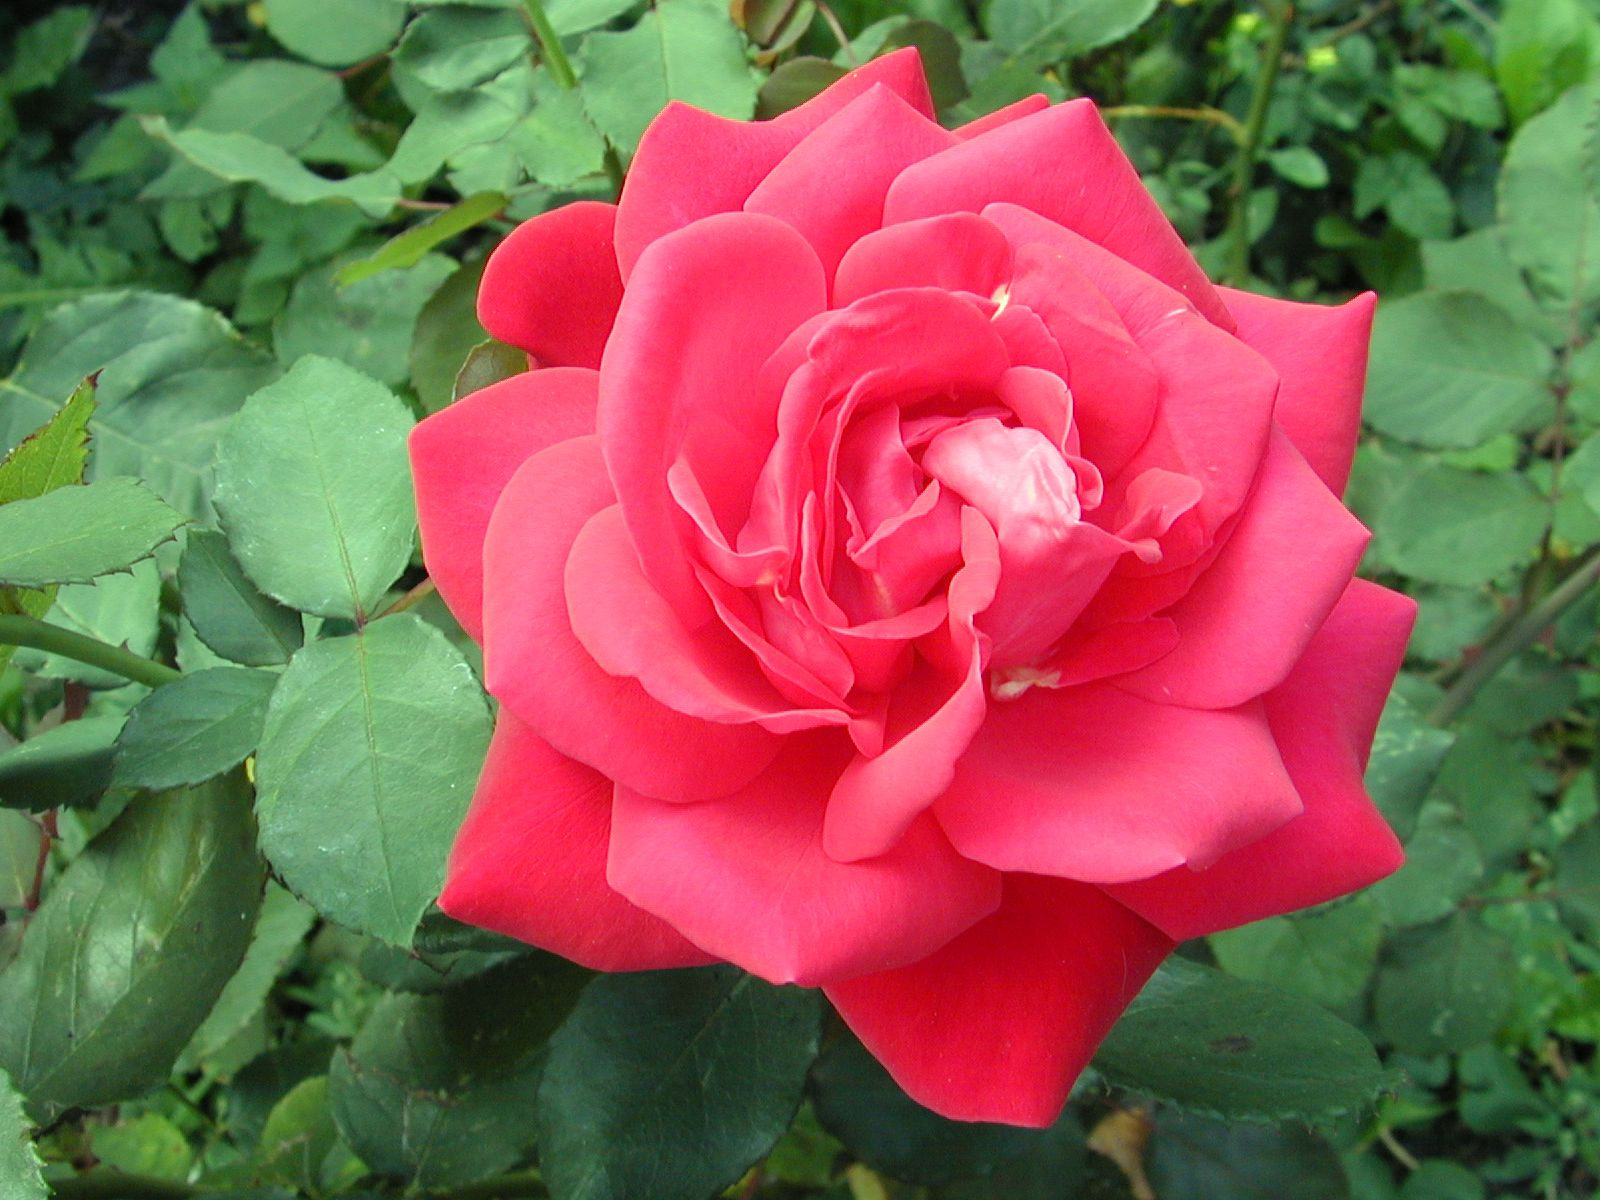 Image After Photos Rose Flower Plant Red Green Bloom